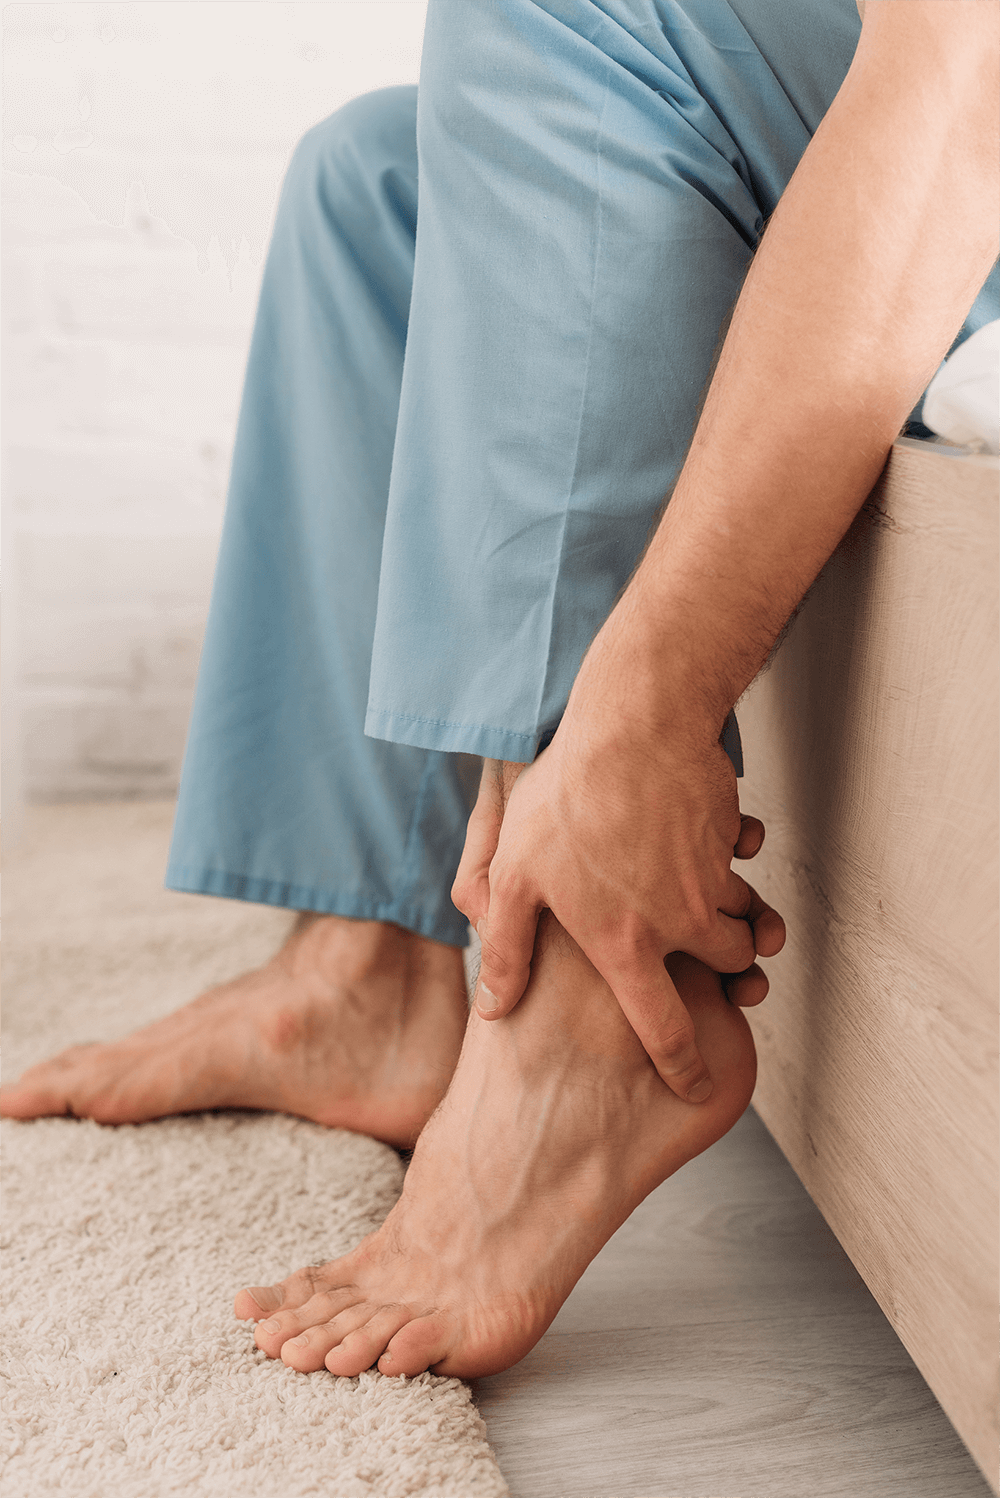 cropped-view-of-man-touching-leg-while-suffering-f-959PR6C.png